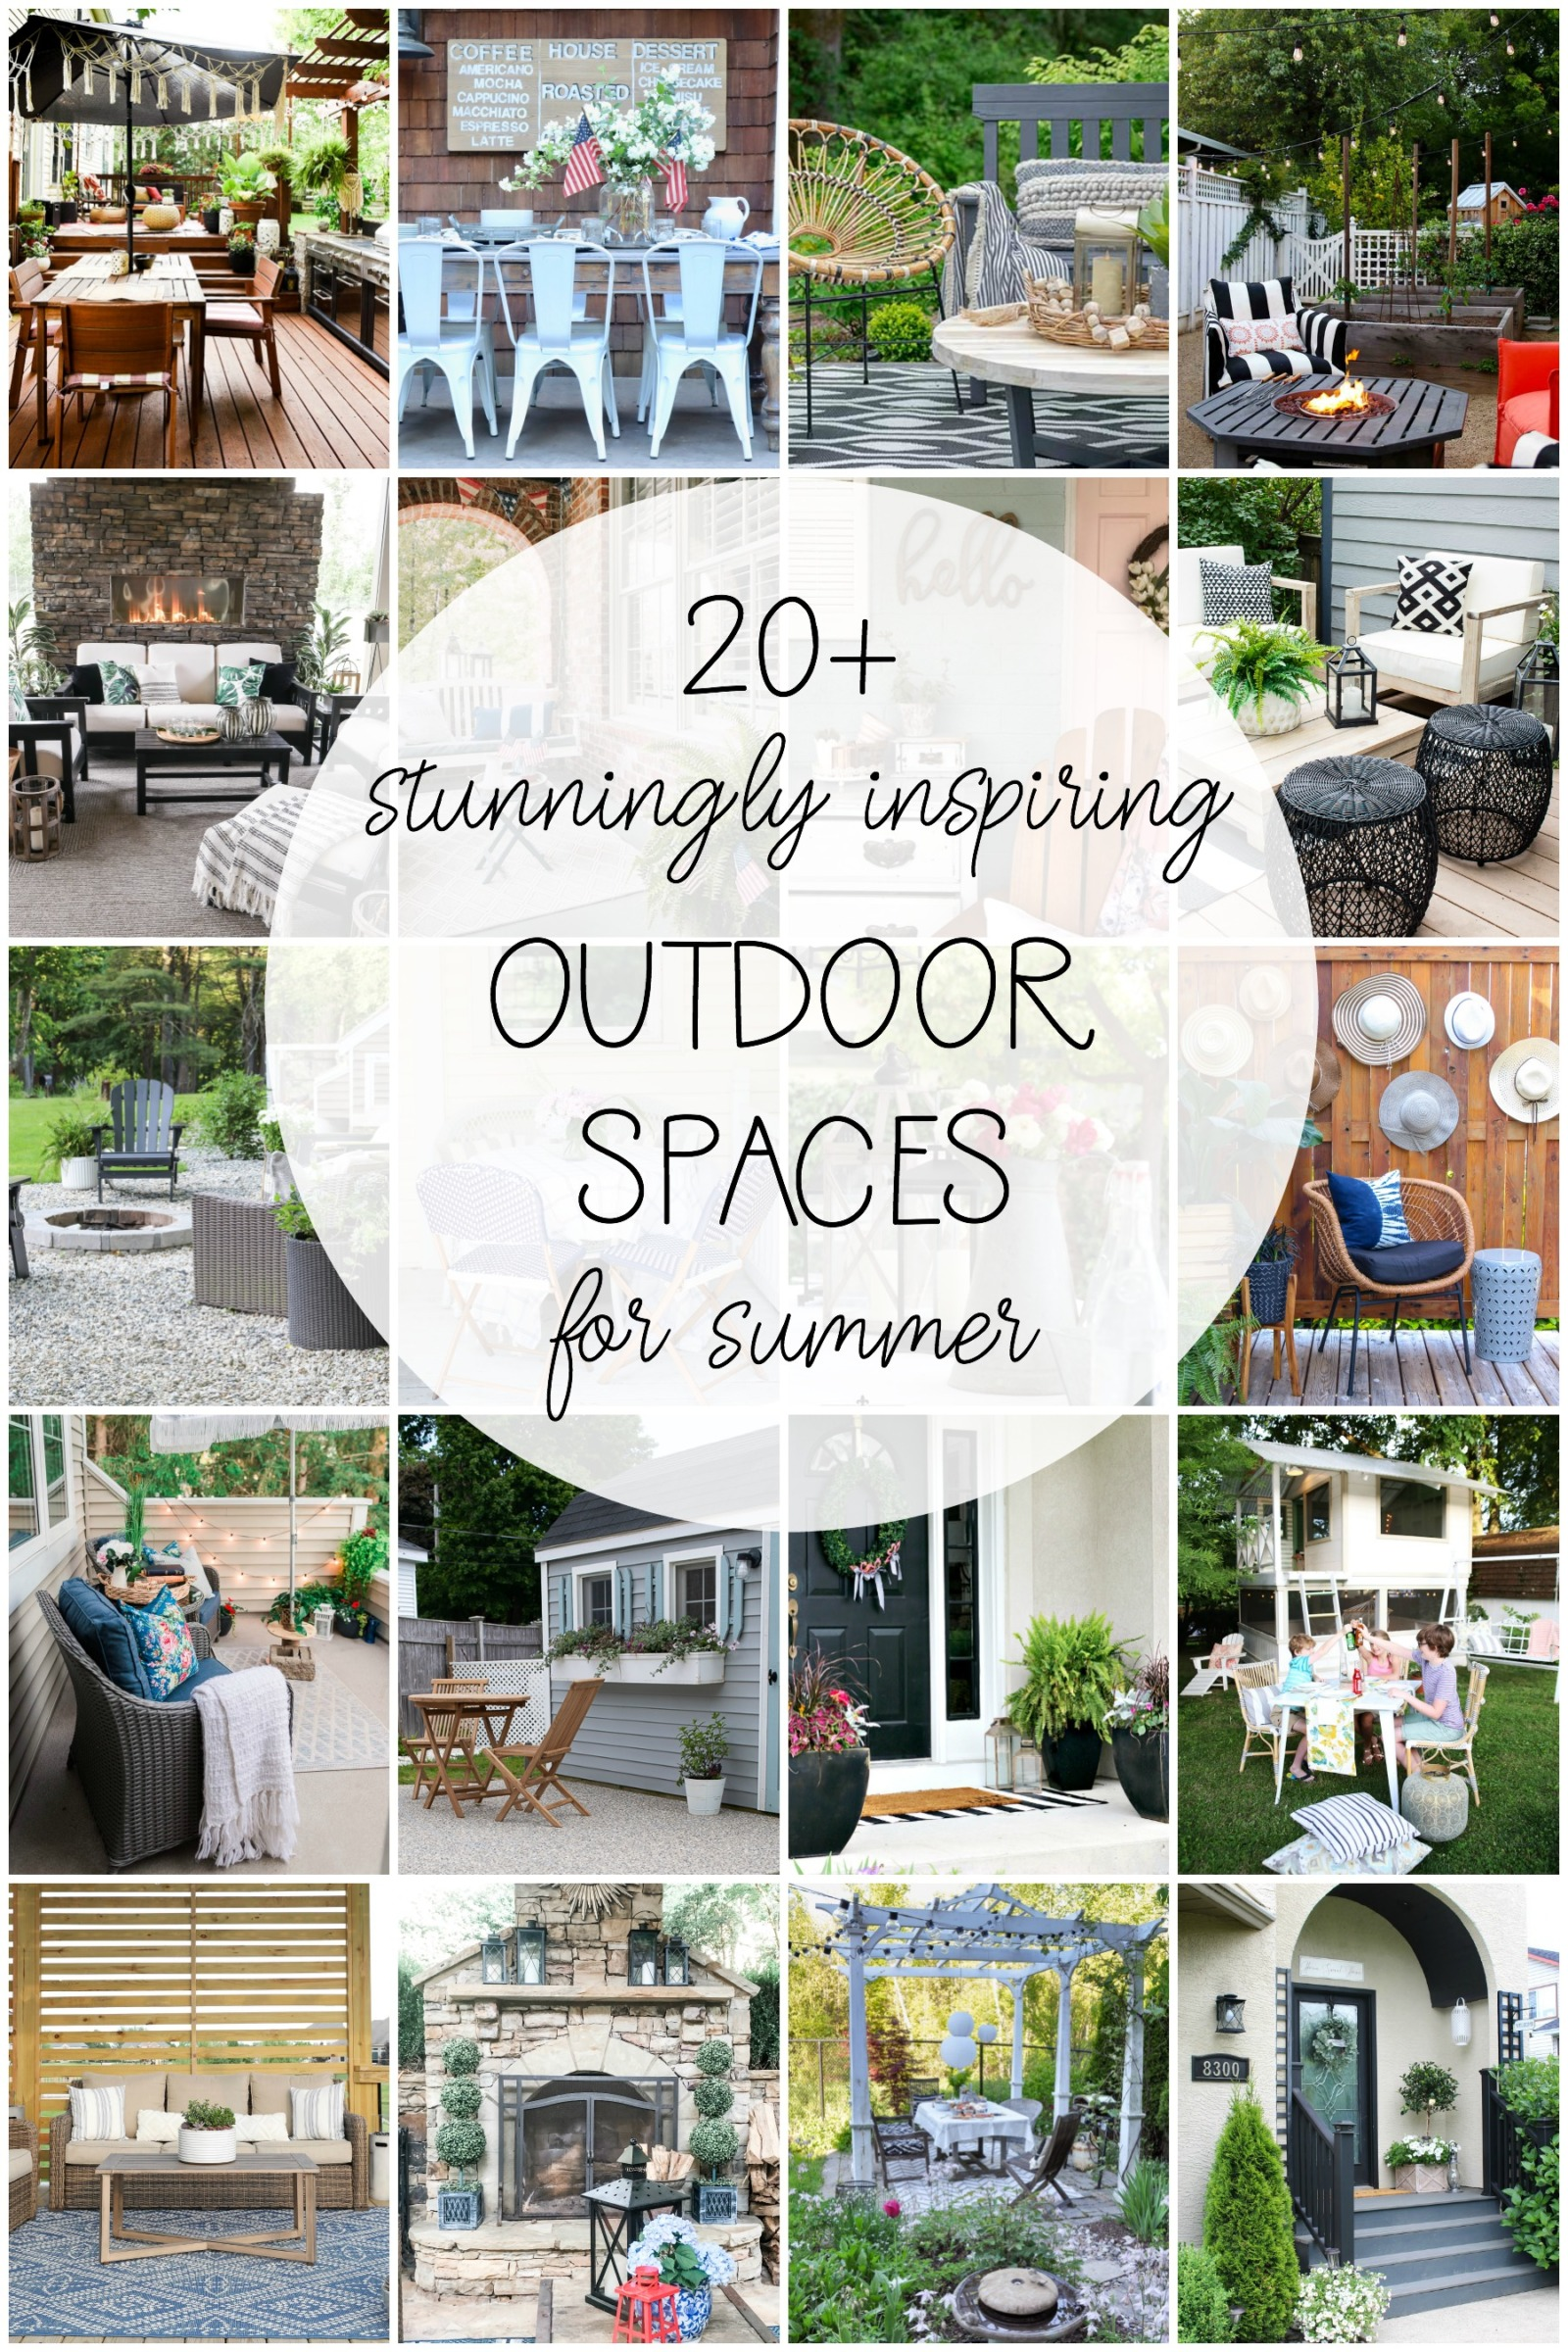 Beautiful patio decor for summer!